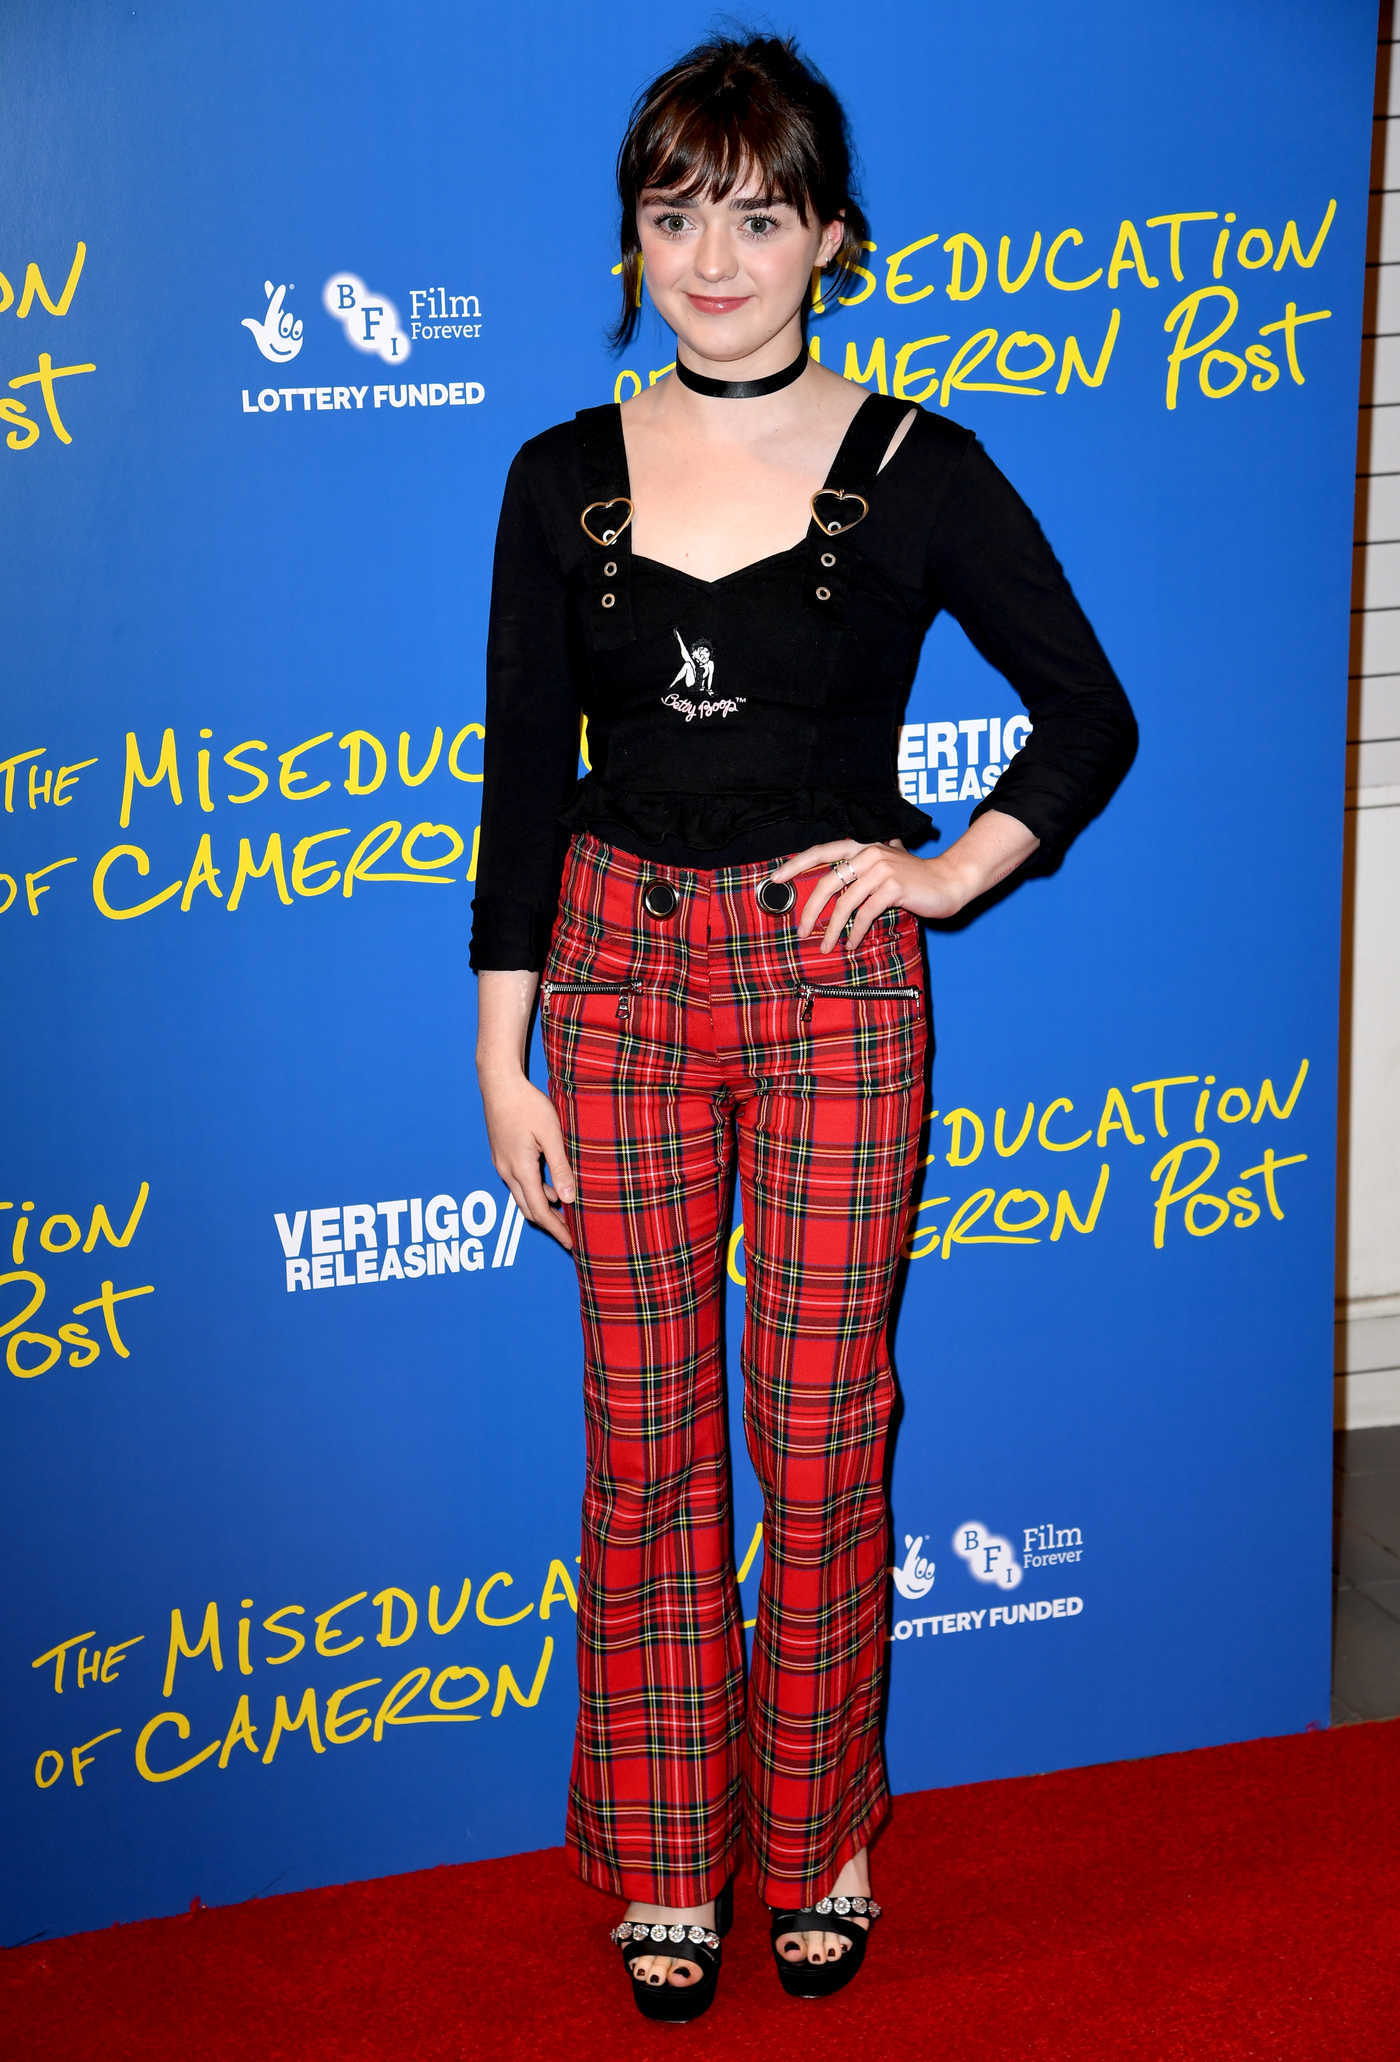 Maisie Williams Attends The Miseducation of Cameron Post Gala Screening in London 08/22/2018